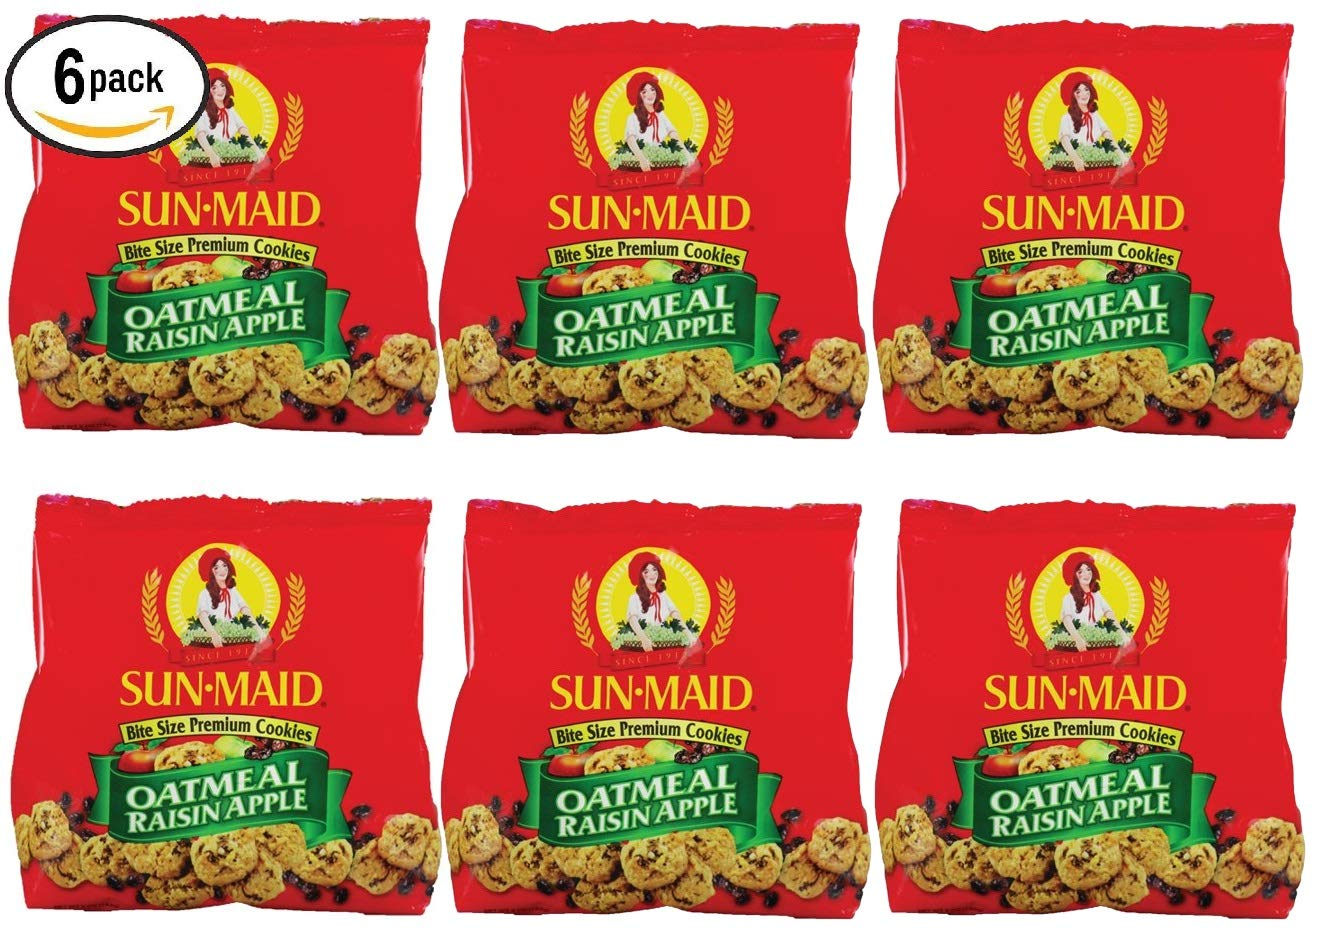 Sun Maid Oatmeal Raisin Apple Bite Size Premium Cookies (Pack of 6). 5 Oz per Pack. 30 Oz Total by Sun Maid